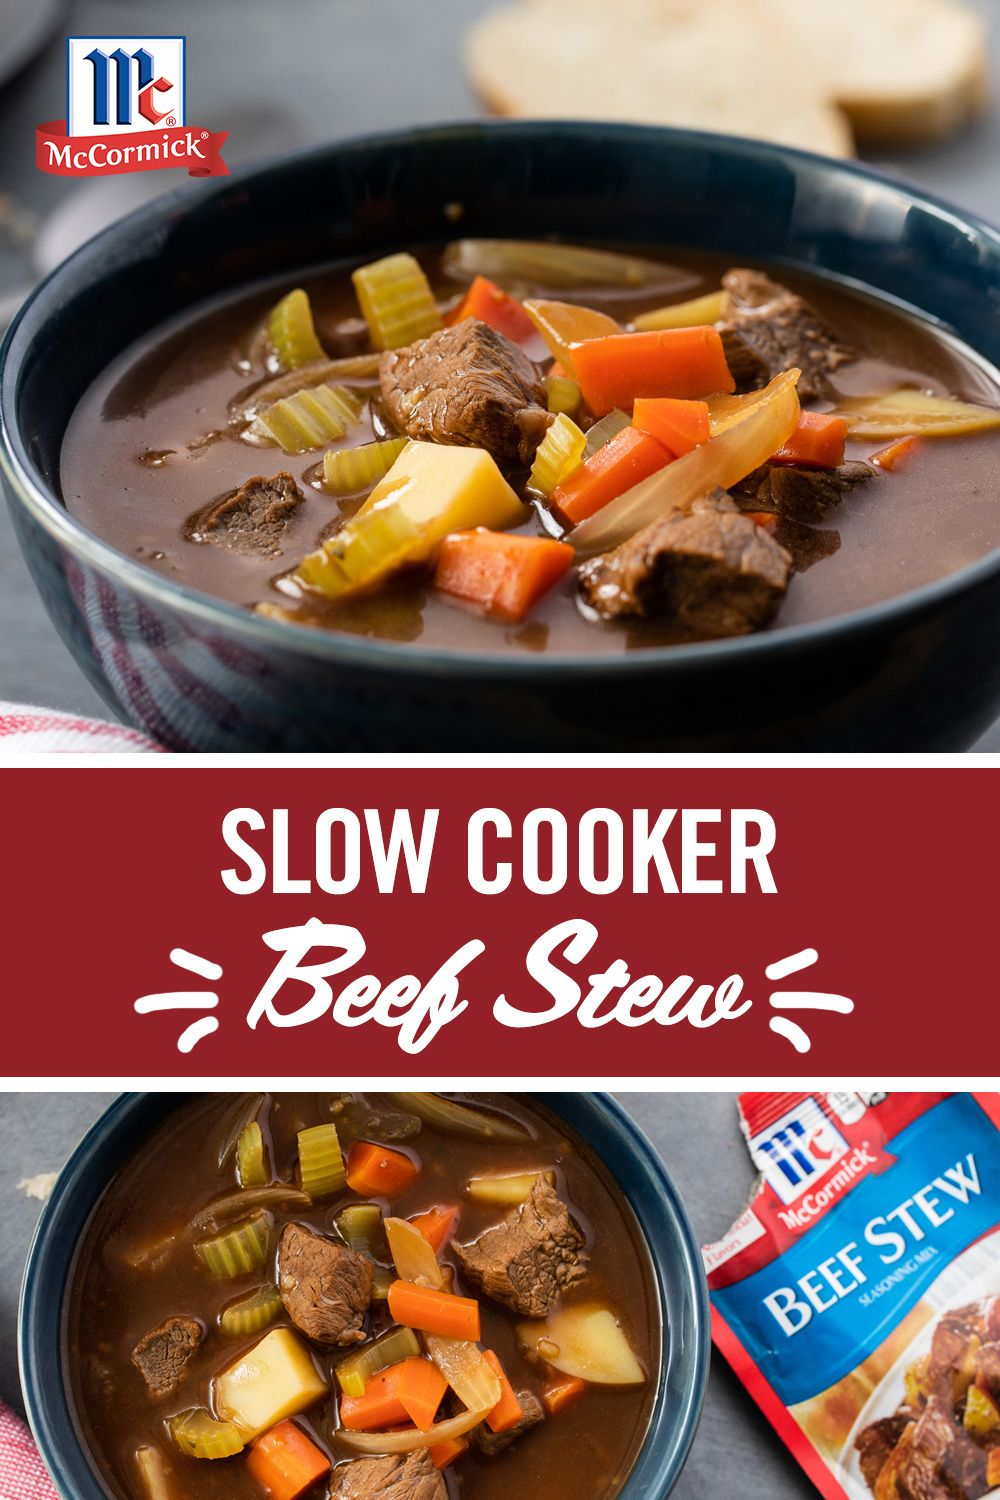 This Slow Cooker Beef Stew Takes Only 10 Minutes Of Prep Time And Is The Perfect Winter Wee With Images Crockpot Recipes Slow Cooker Slow Cooker Beef Stew Slow Cooker Beef